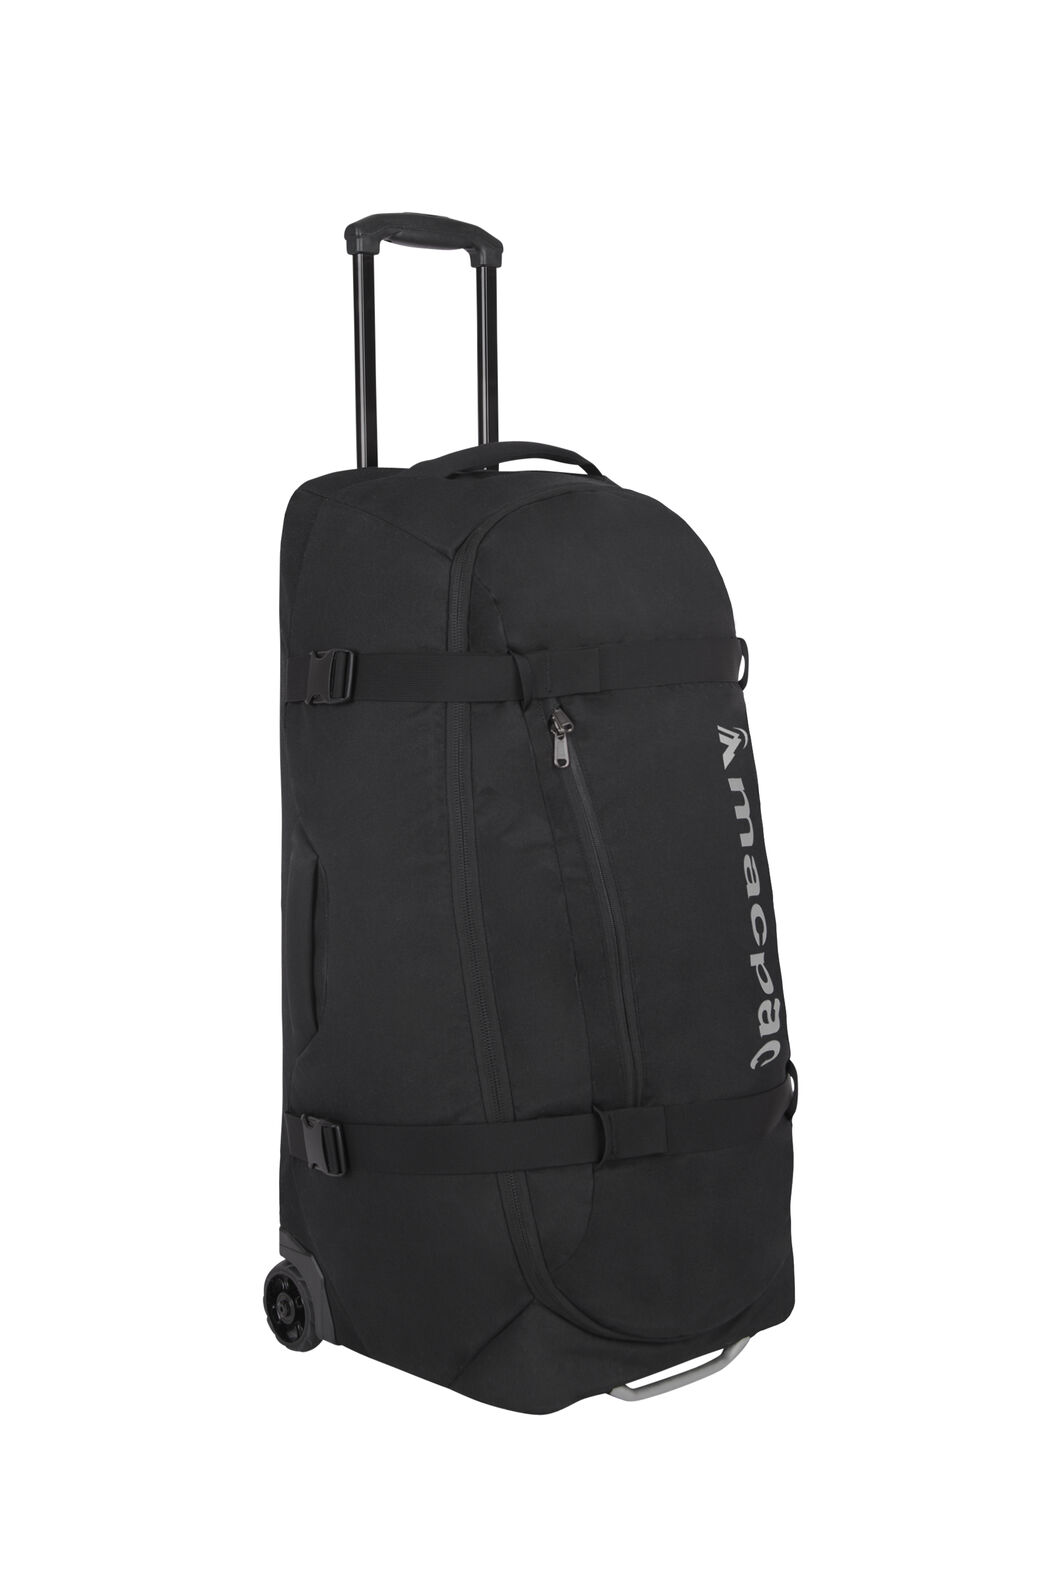 Global 80L Travel Bag, Black, hi-res